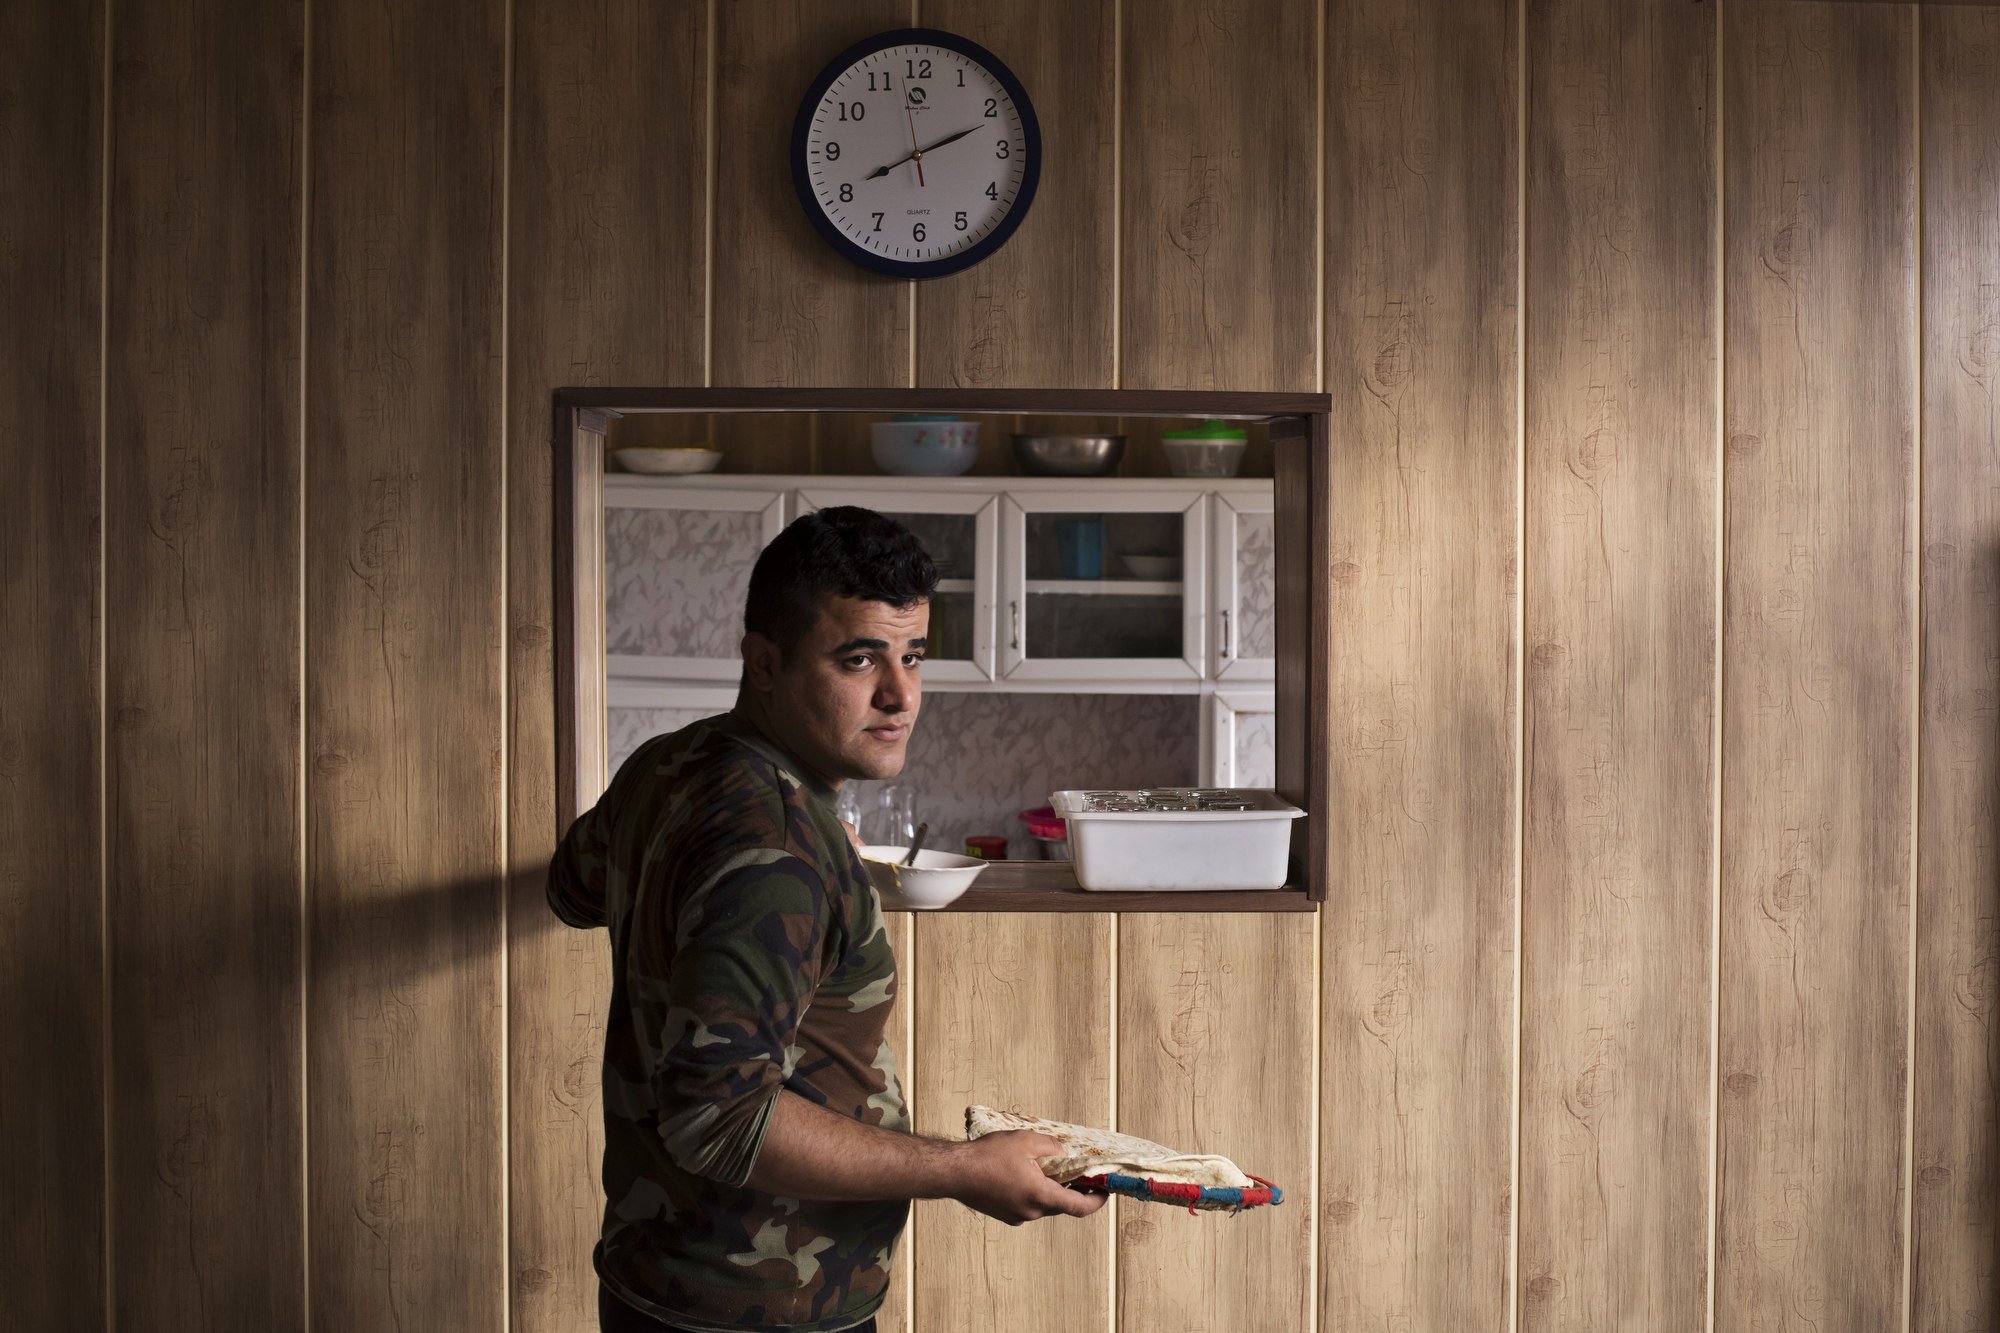 A cook prepares breakfast for officers at a base.